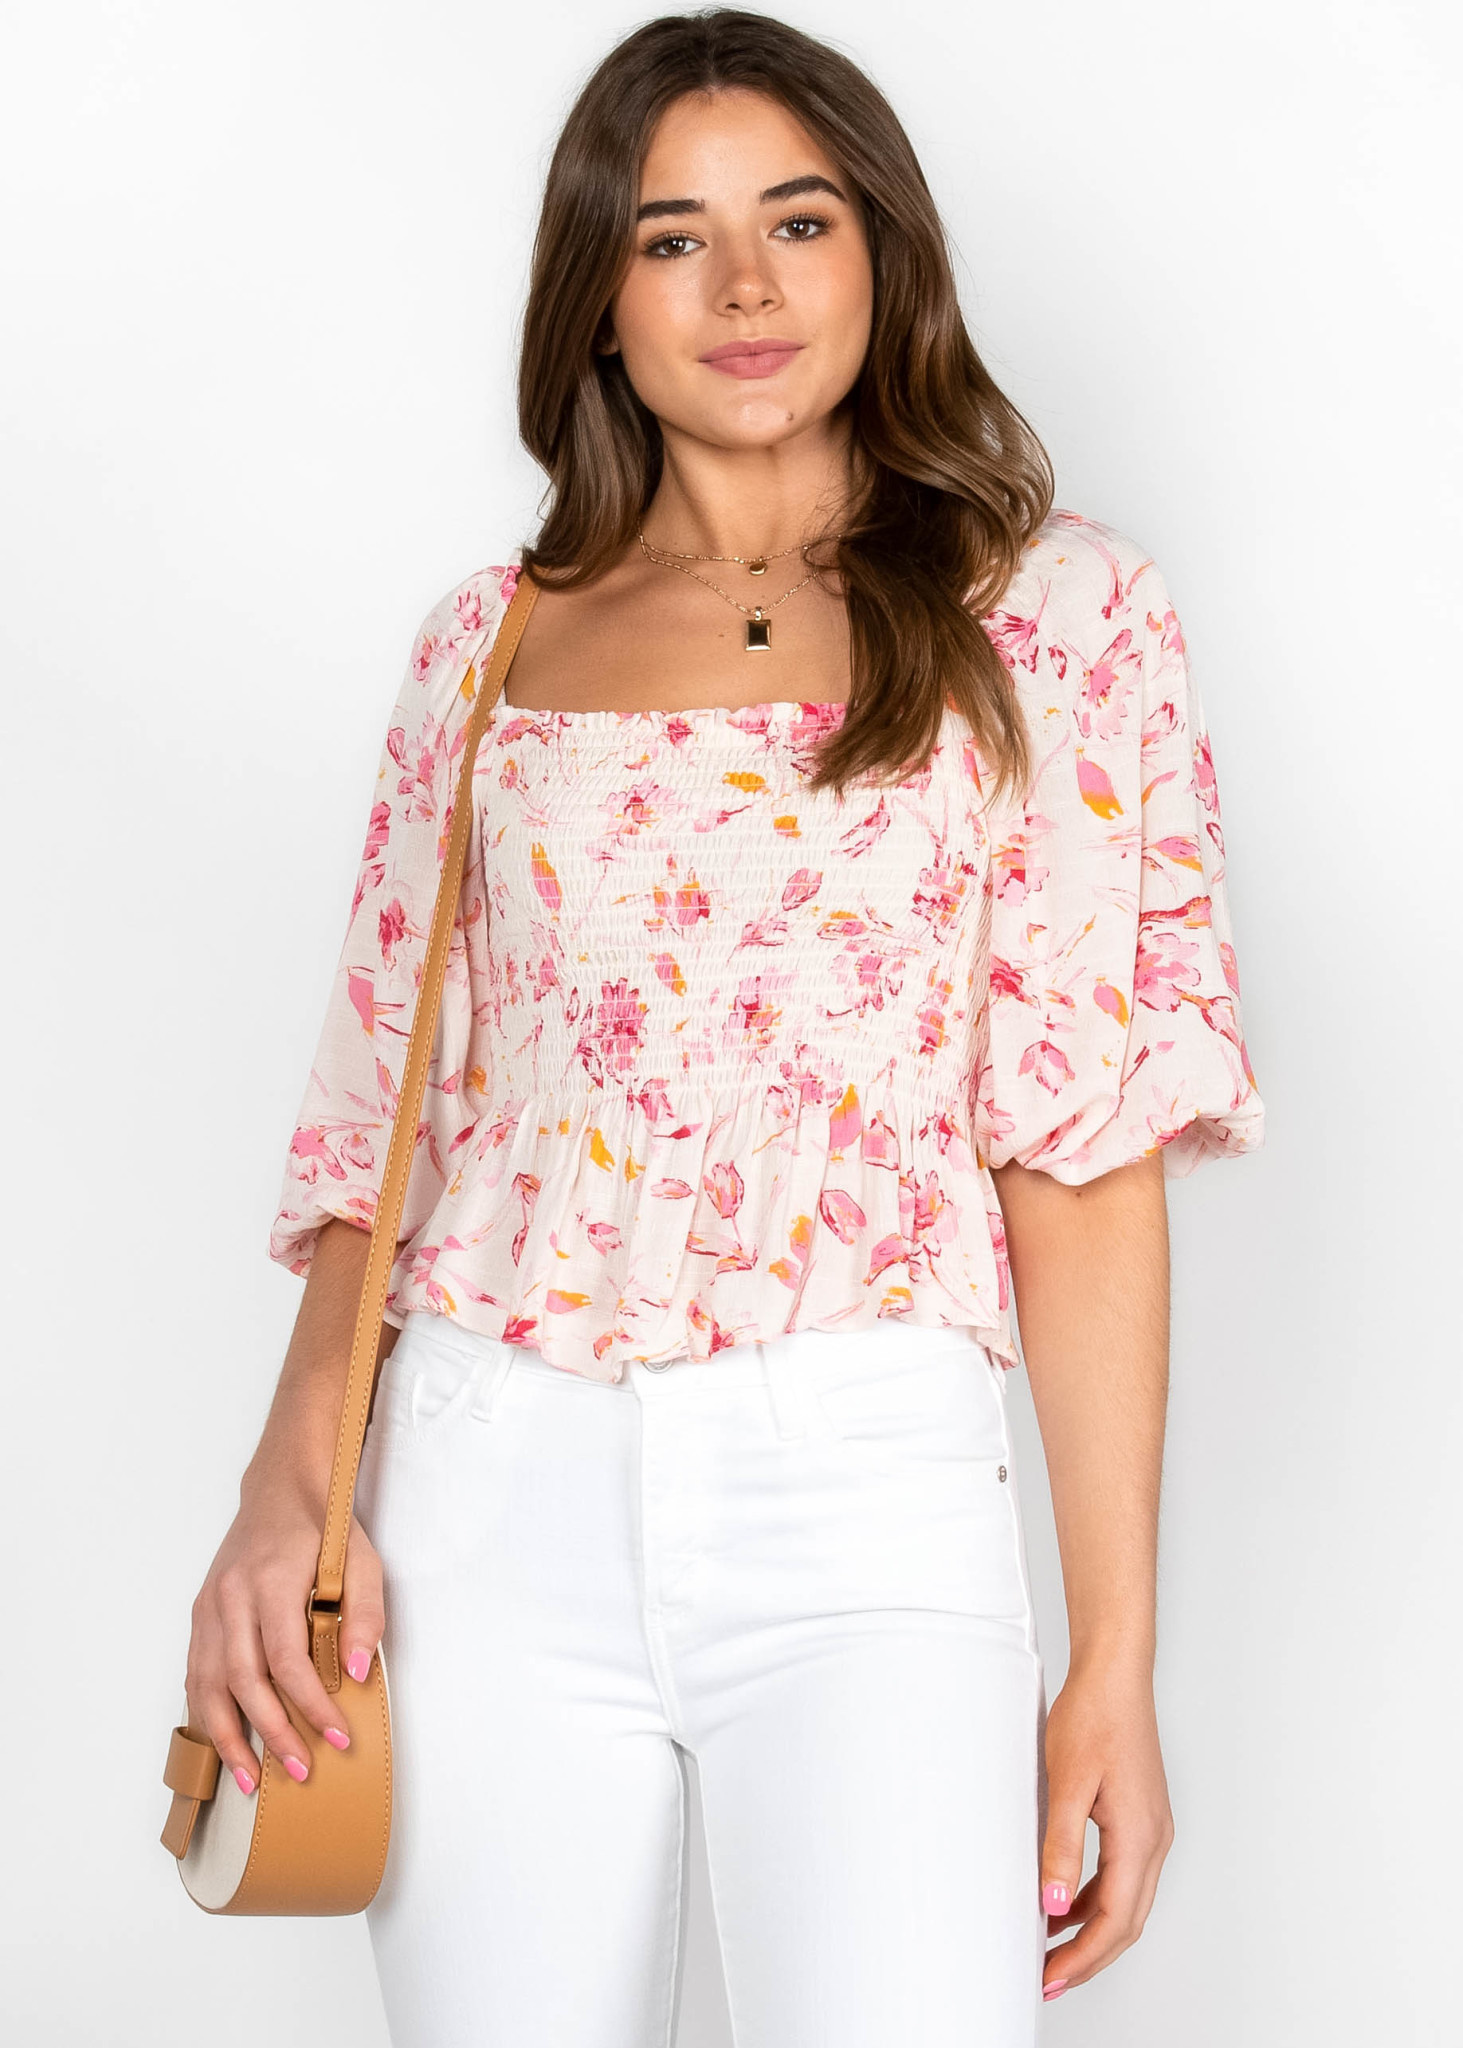 PRETTY PETALS SMOCKED PEPLUM TOP